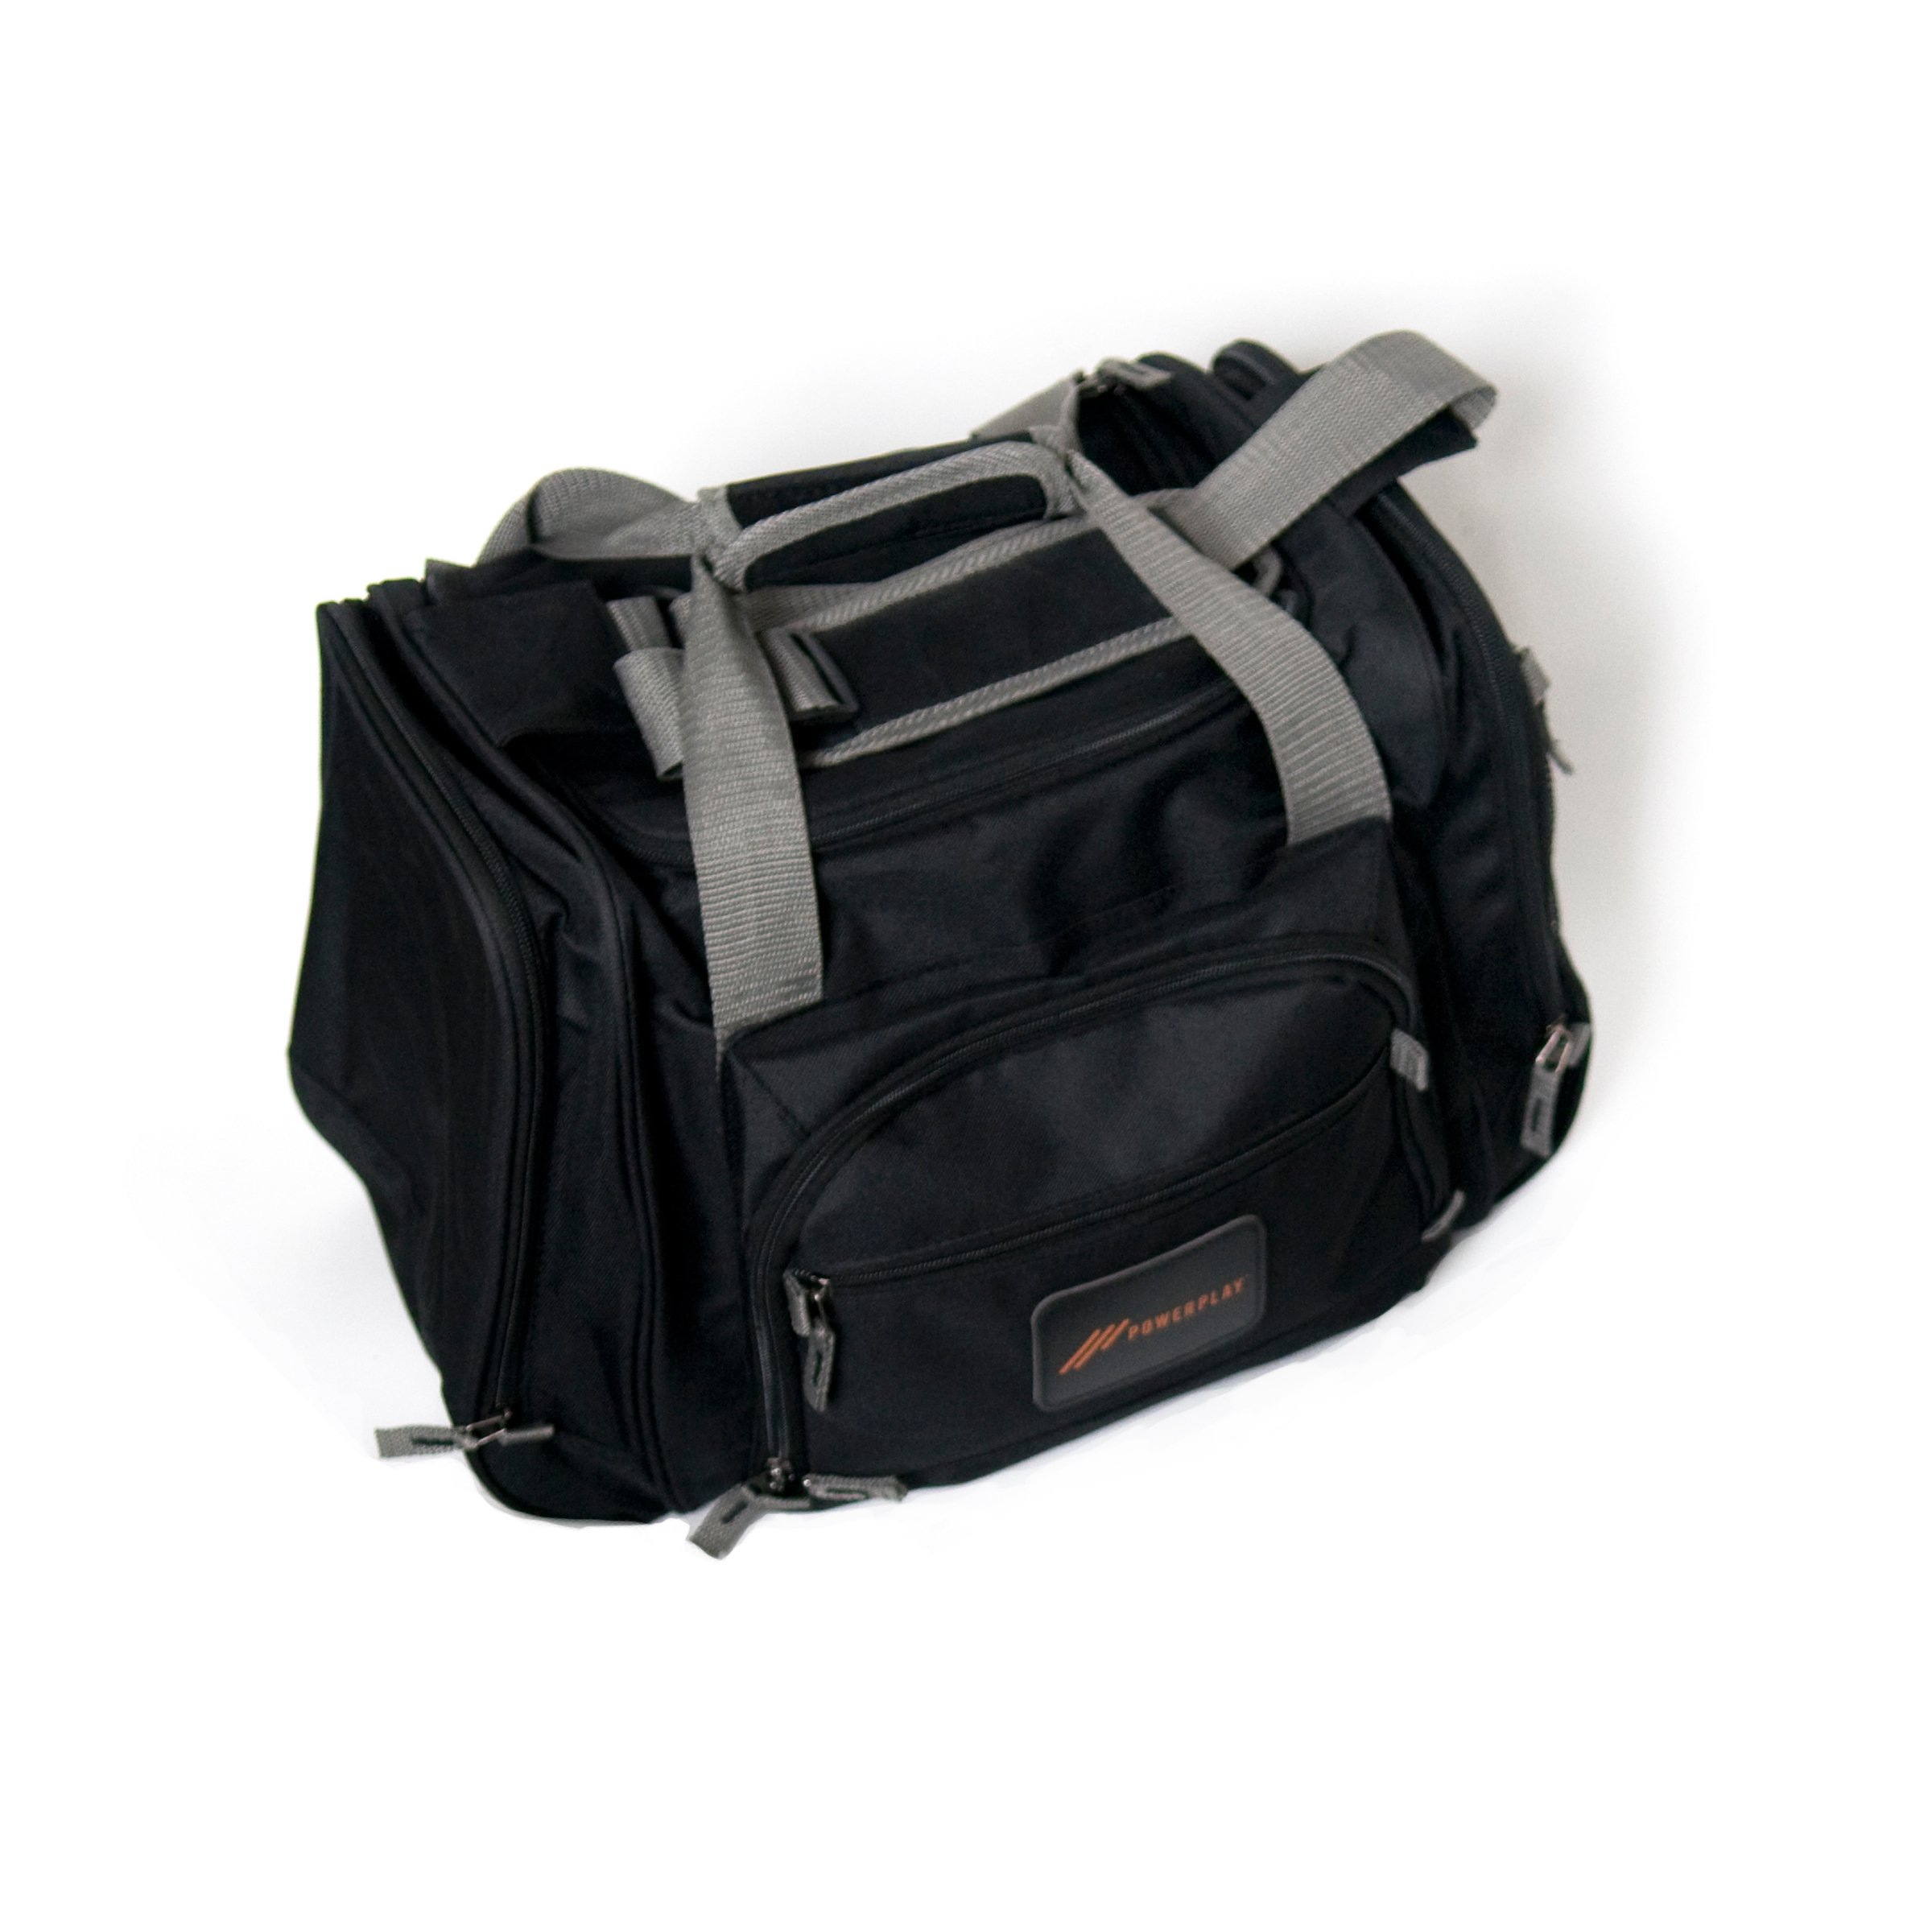 PowerPlay Cold & Compression Insulated Carrying Case